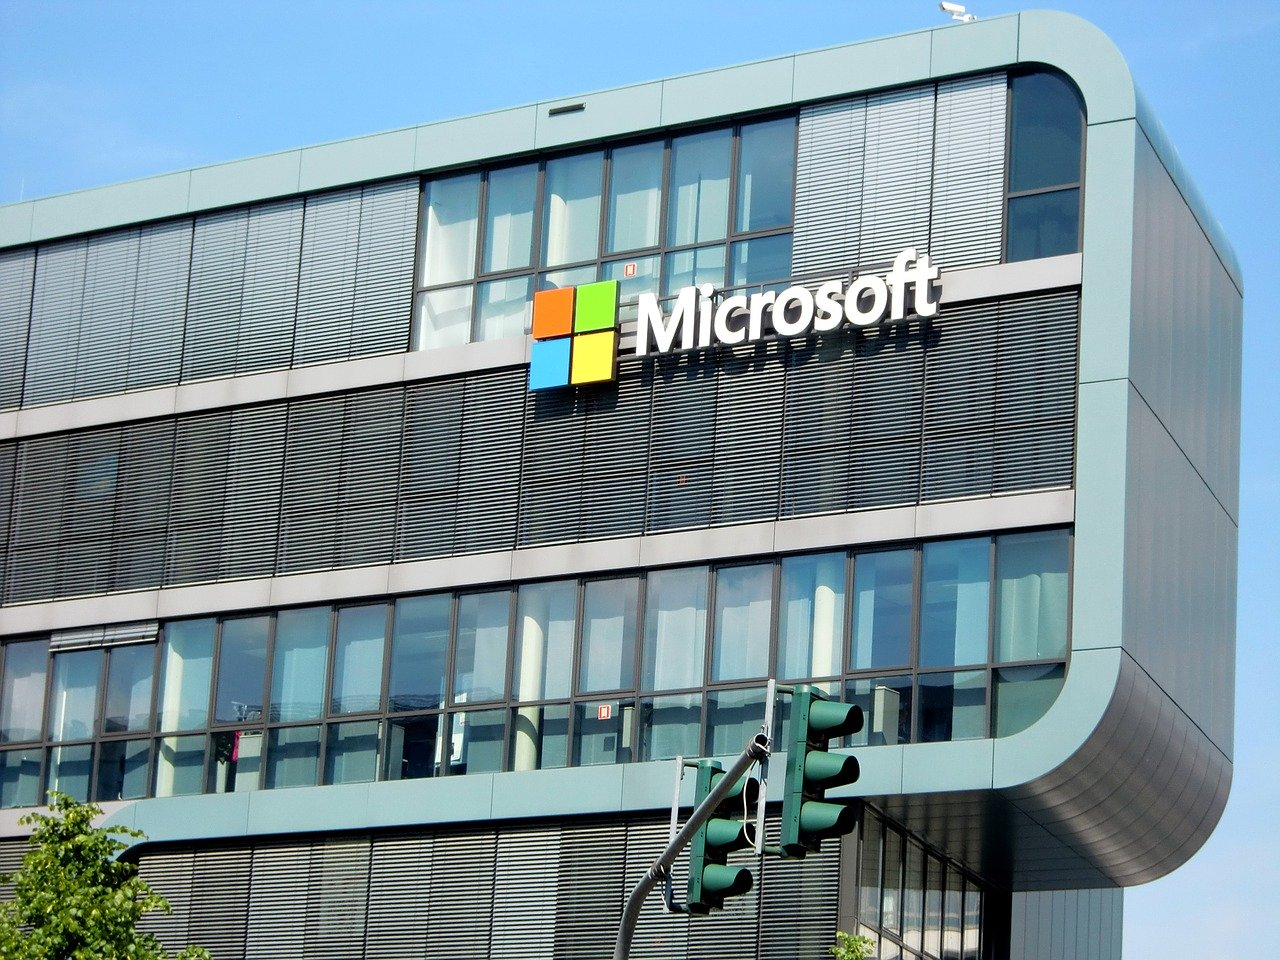 MICROSOFT MSFT stock news and analysis